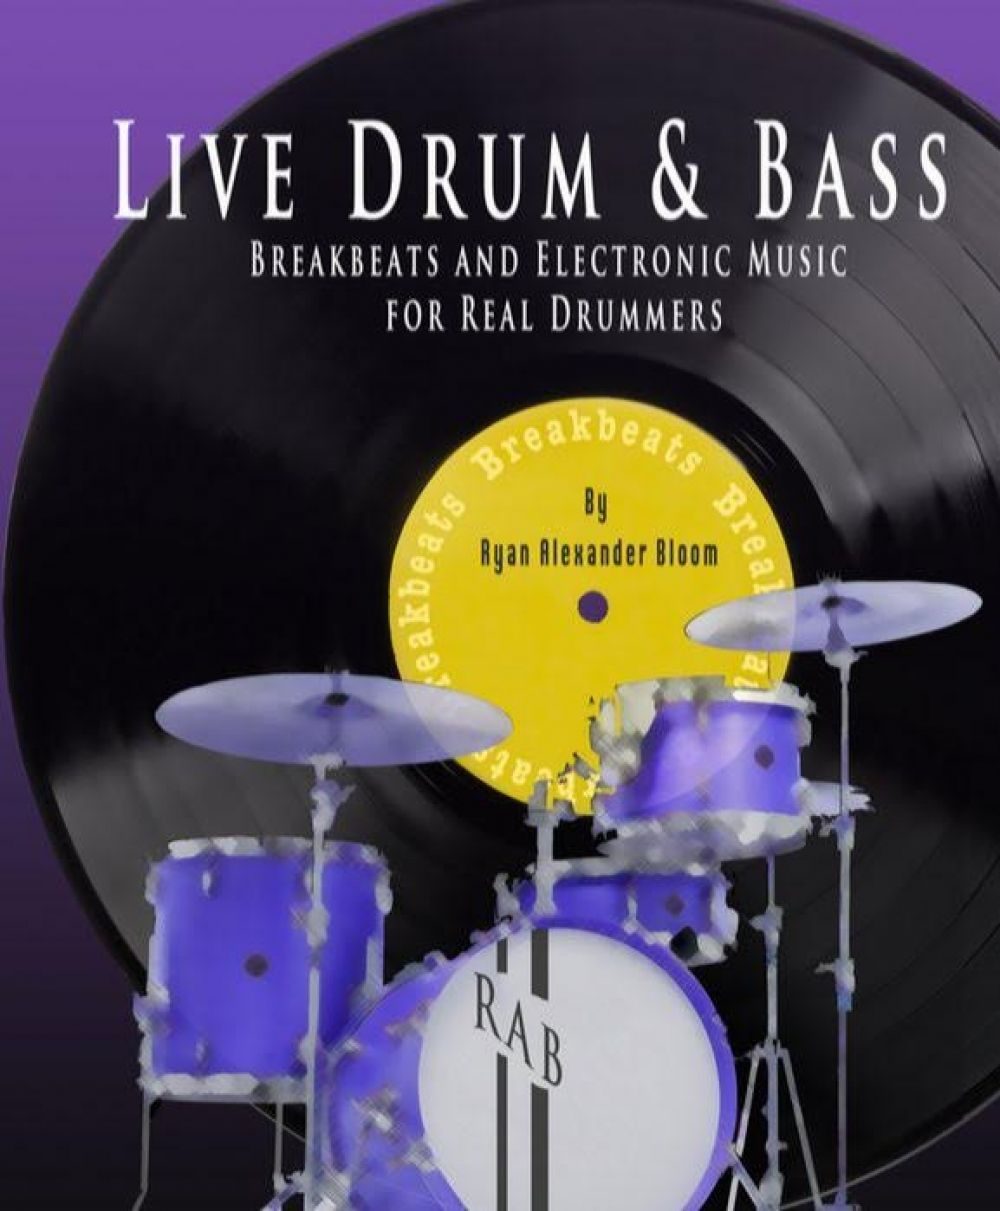 3 Simple Drum and Bass Steps How to Play, With Notation